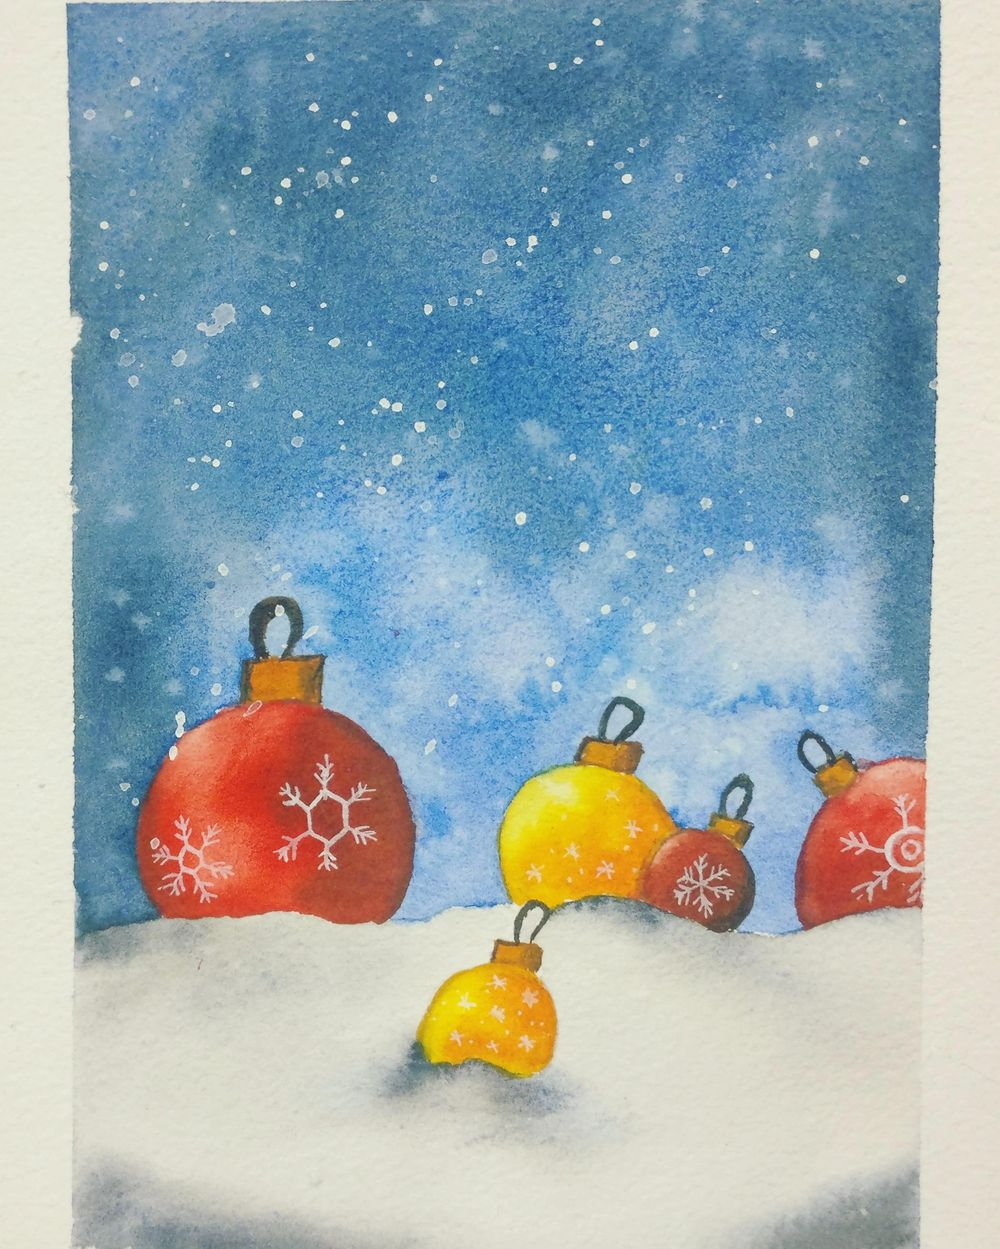 Christmas with watercolors - image 11 - student project